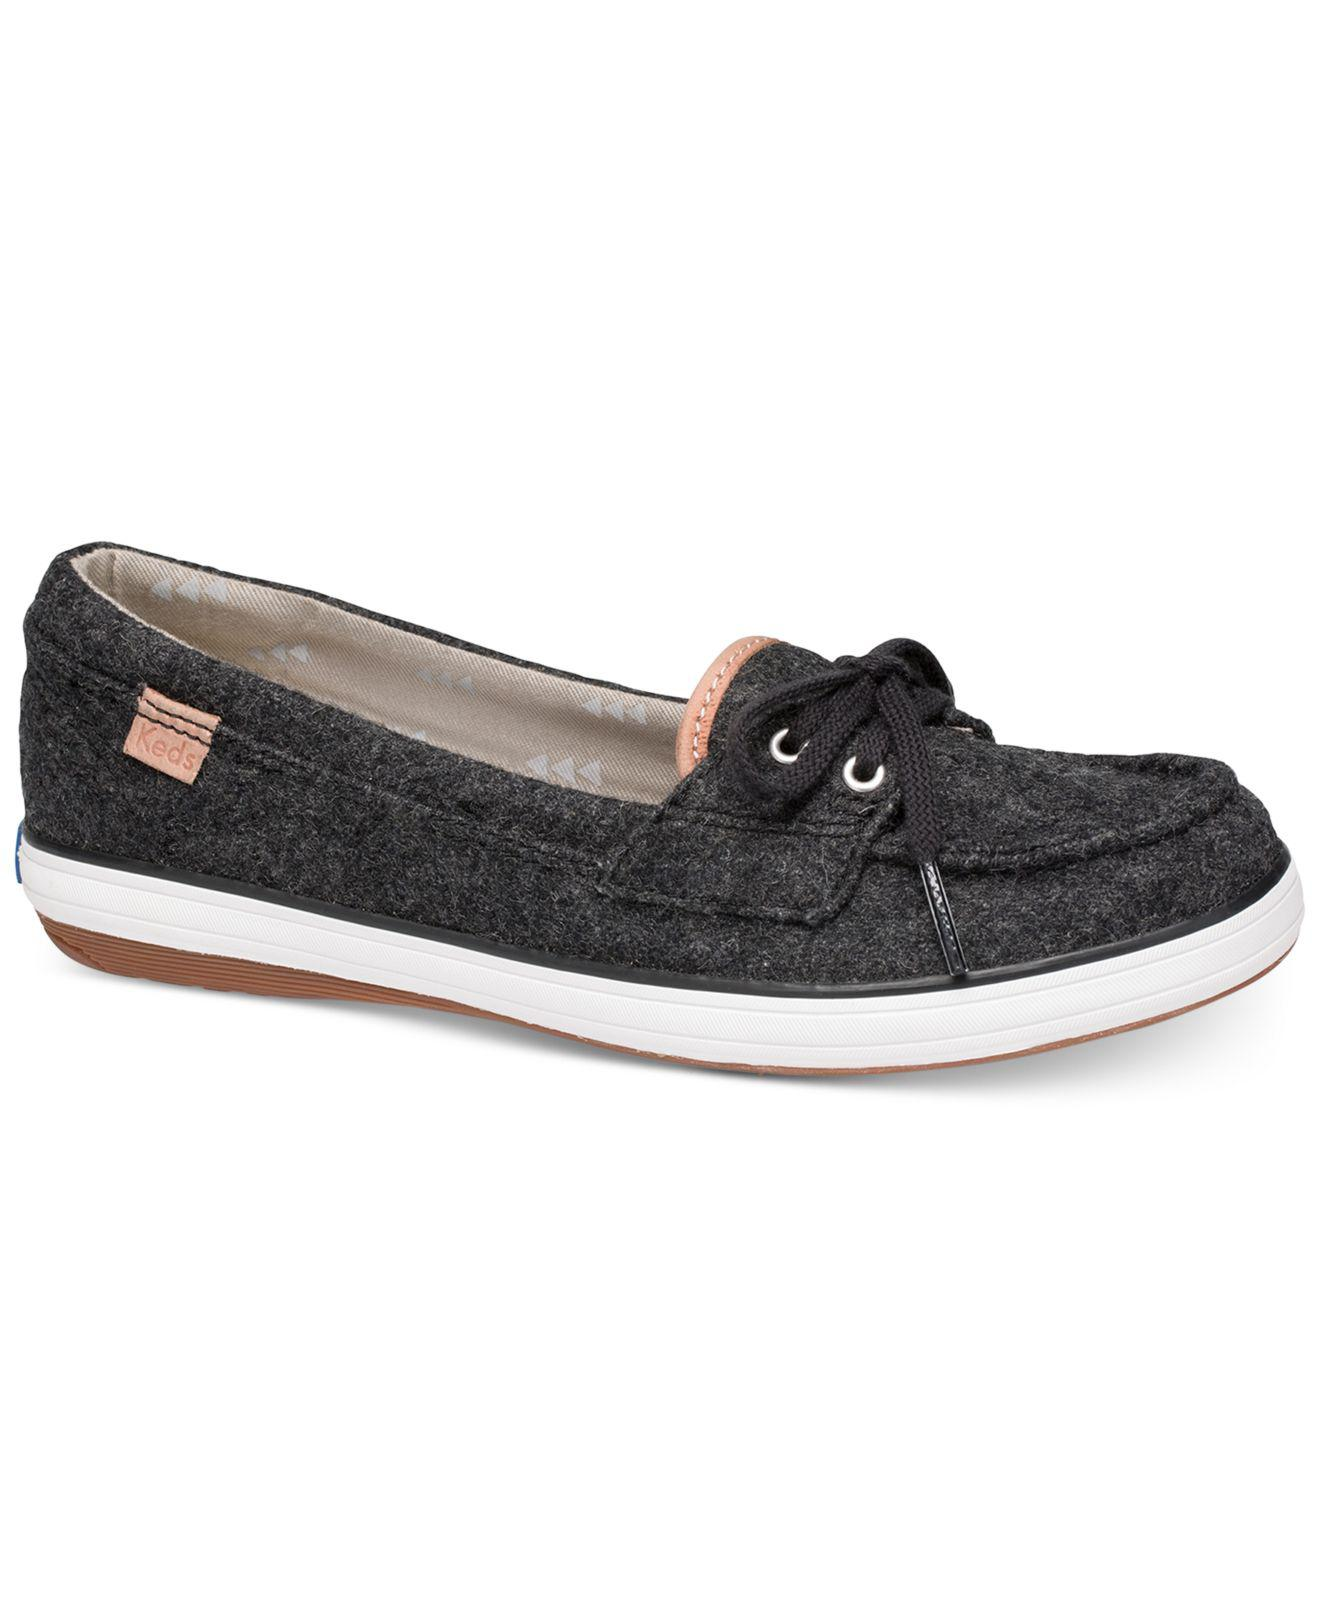 fa395096 Keds. Women's Glimmer Felt Slip-on Sneakers